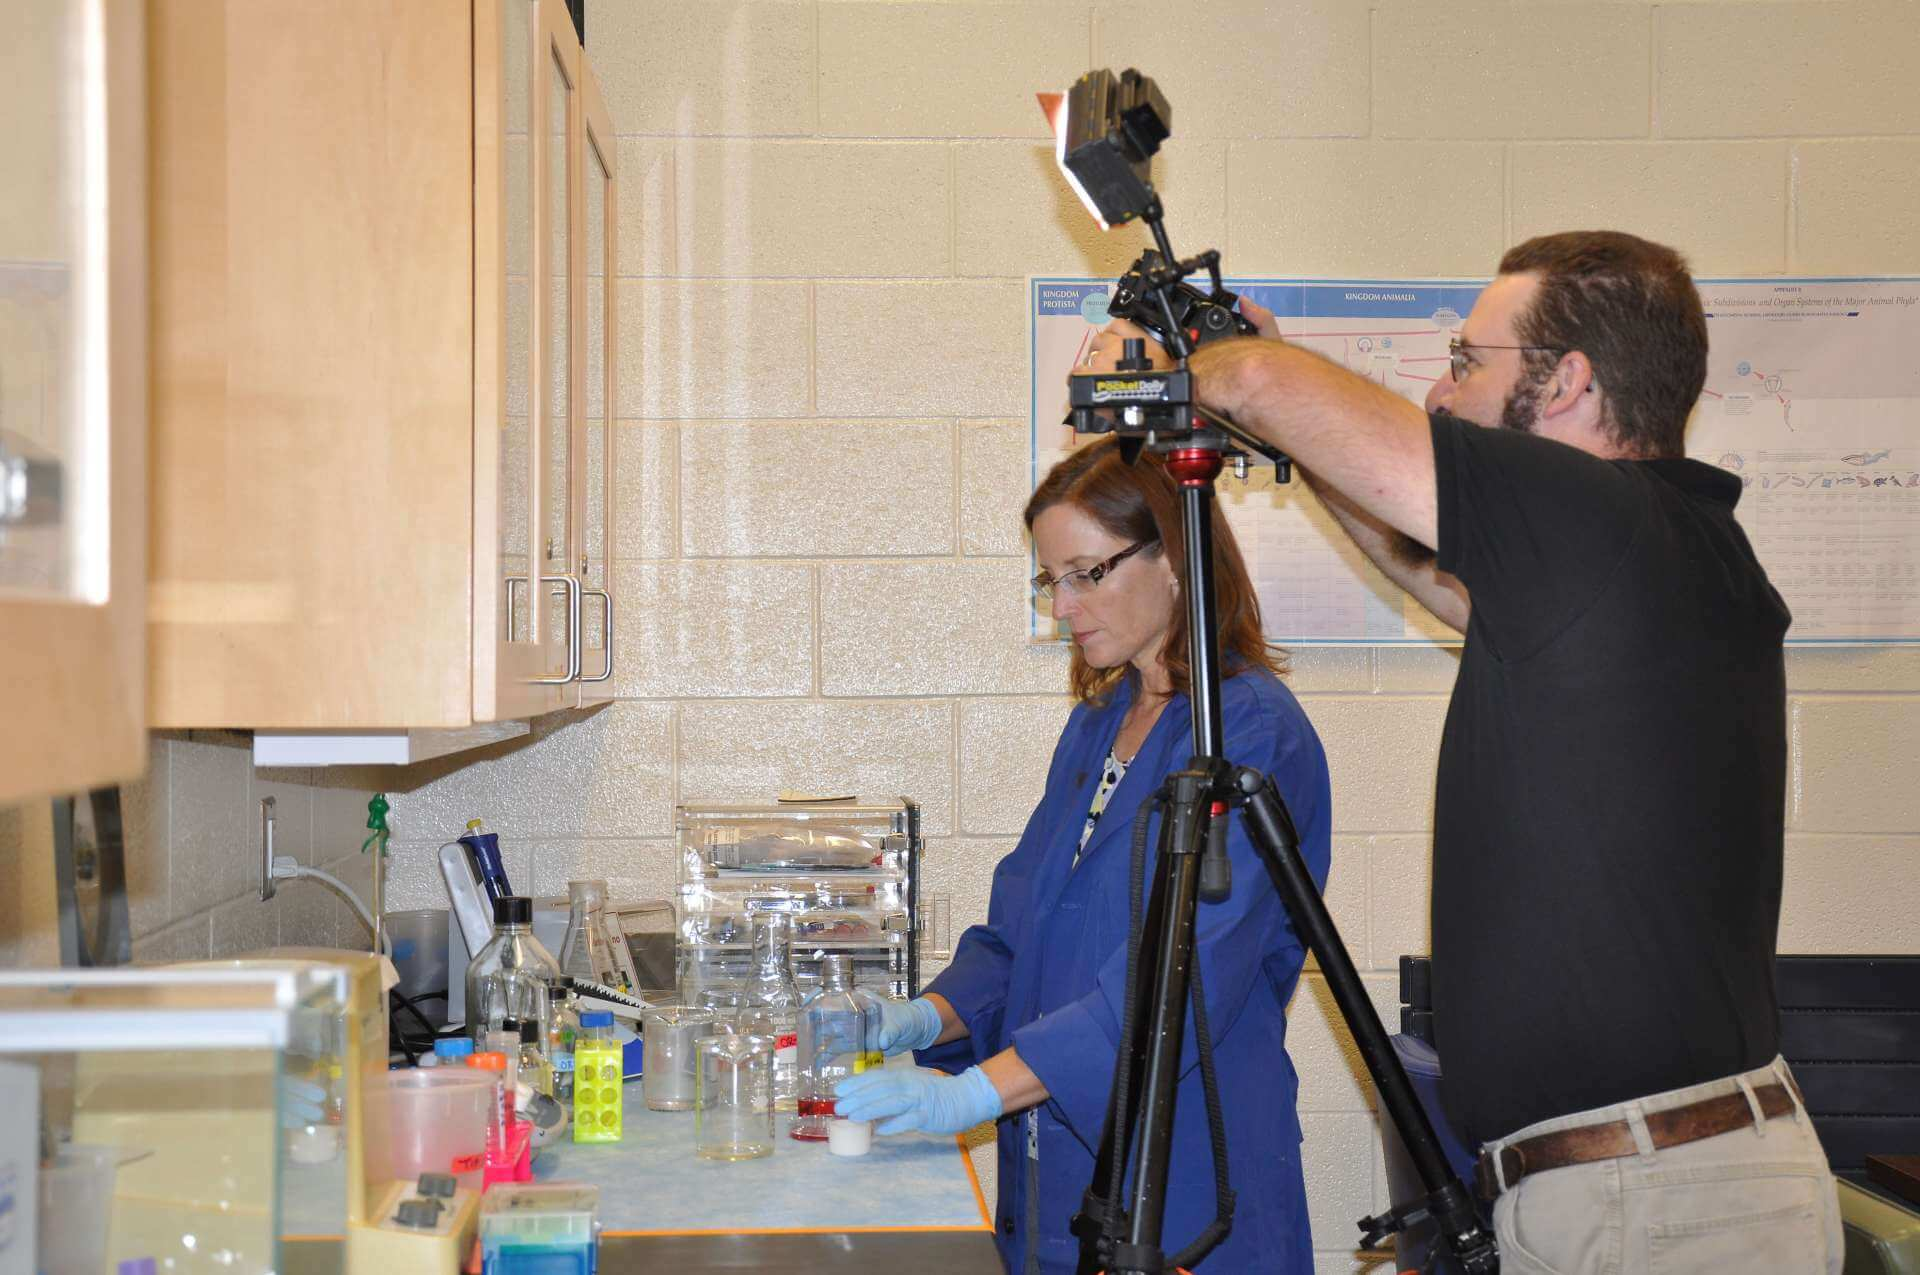 Dr. Carol Plautz, associate professor of biology, demonstrates a research technique for use in a video in the Journal of Visualized Experiments (JoVE).